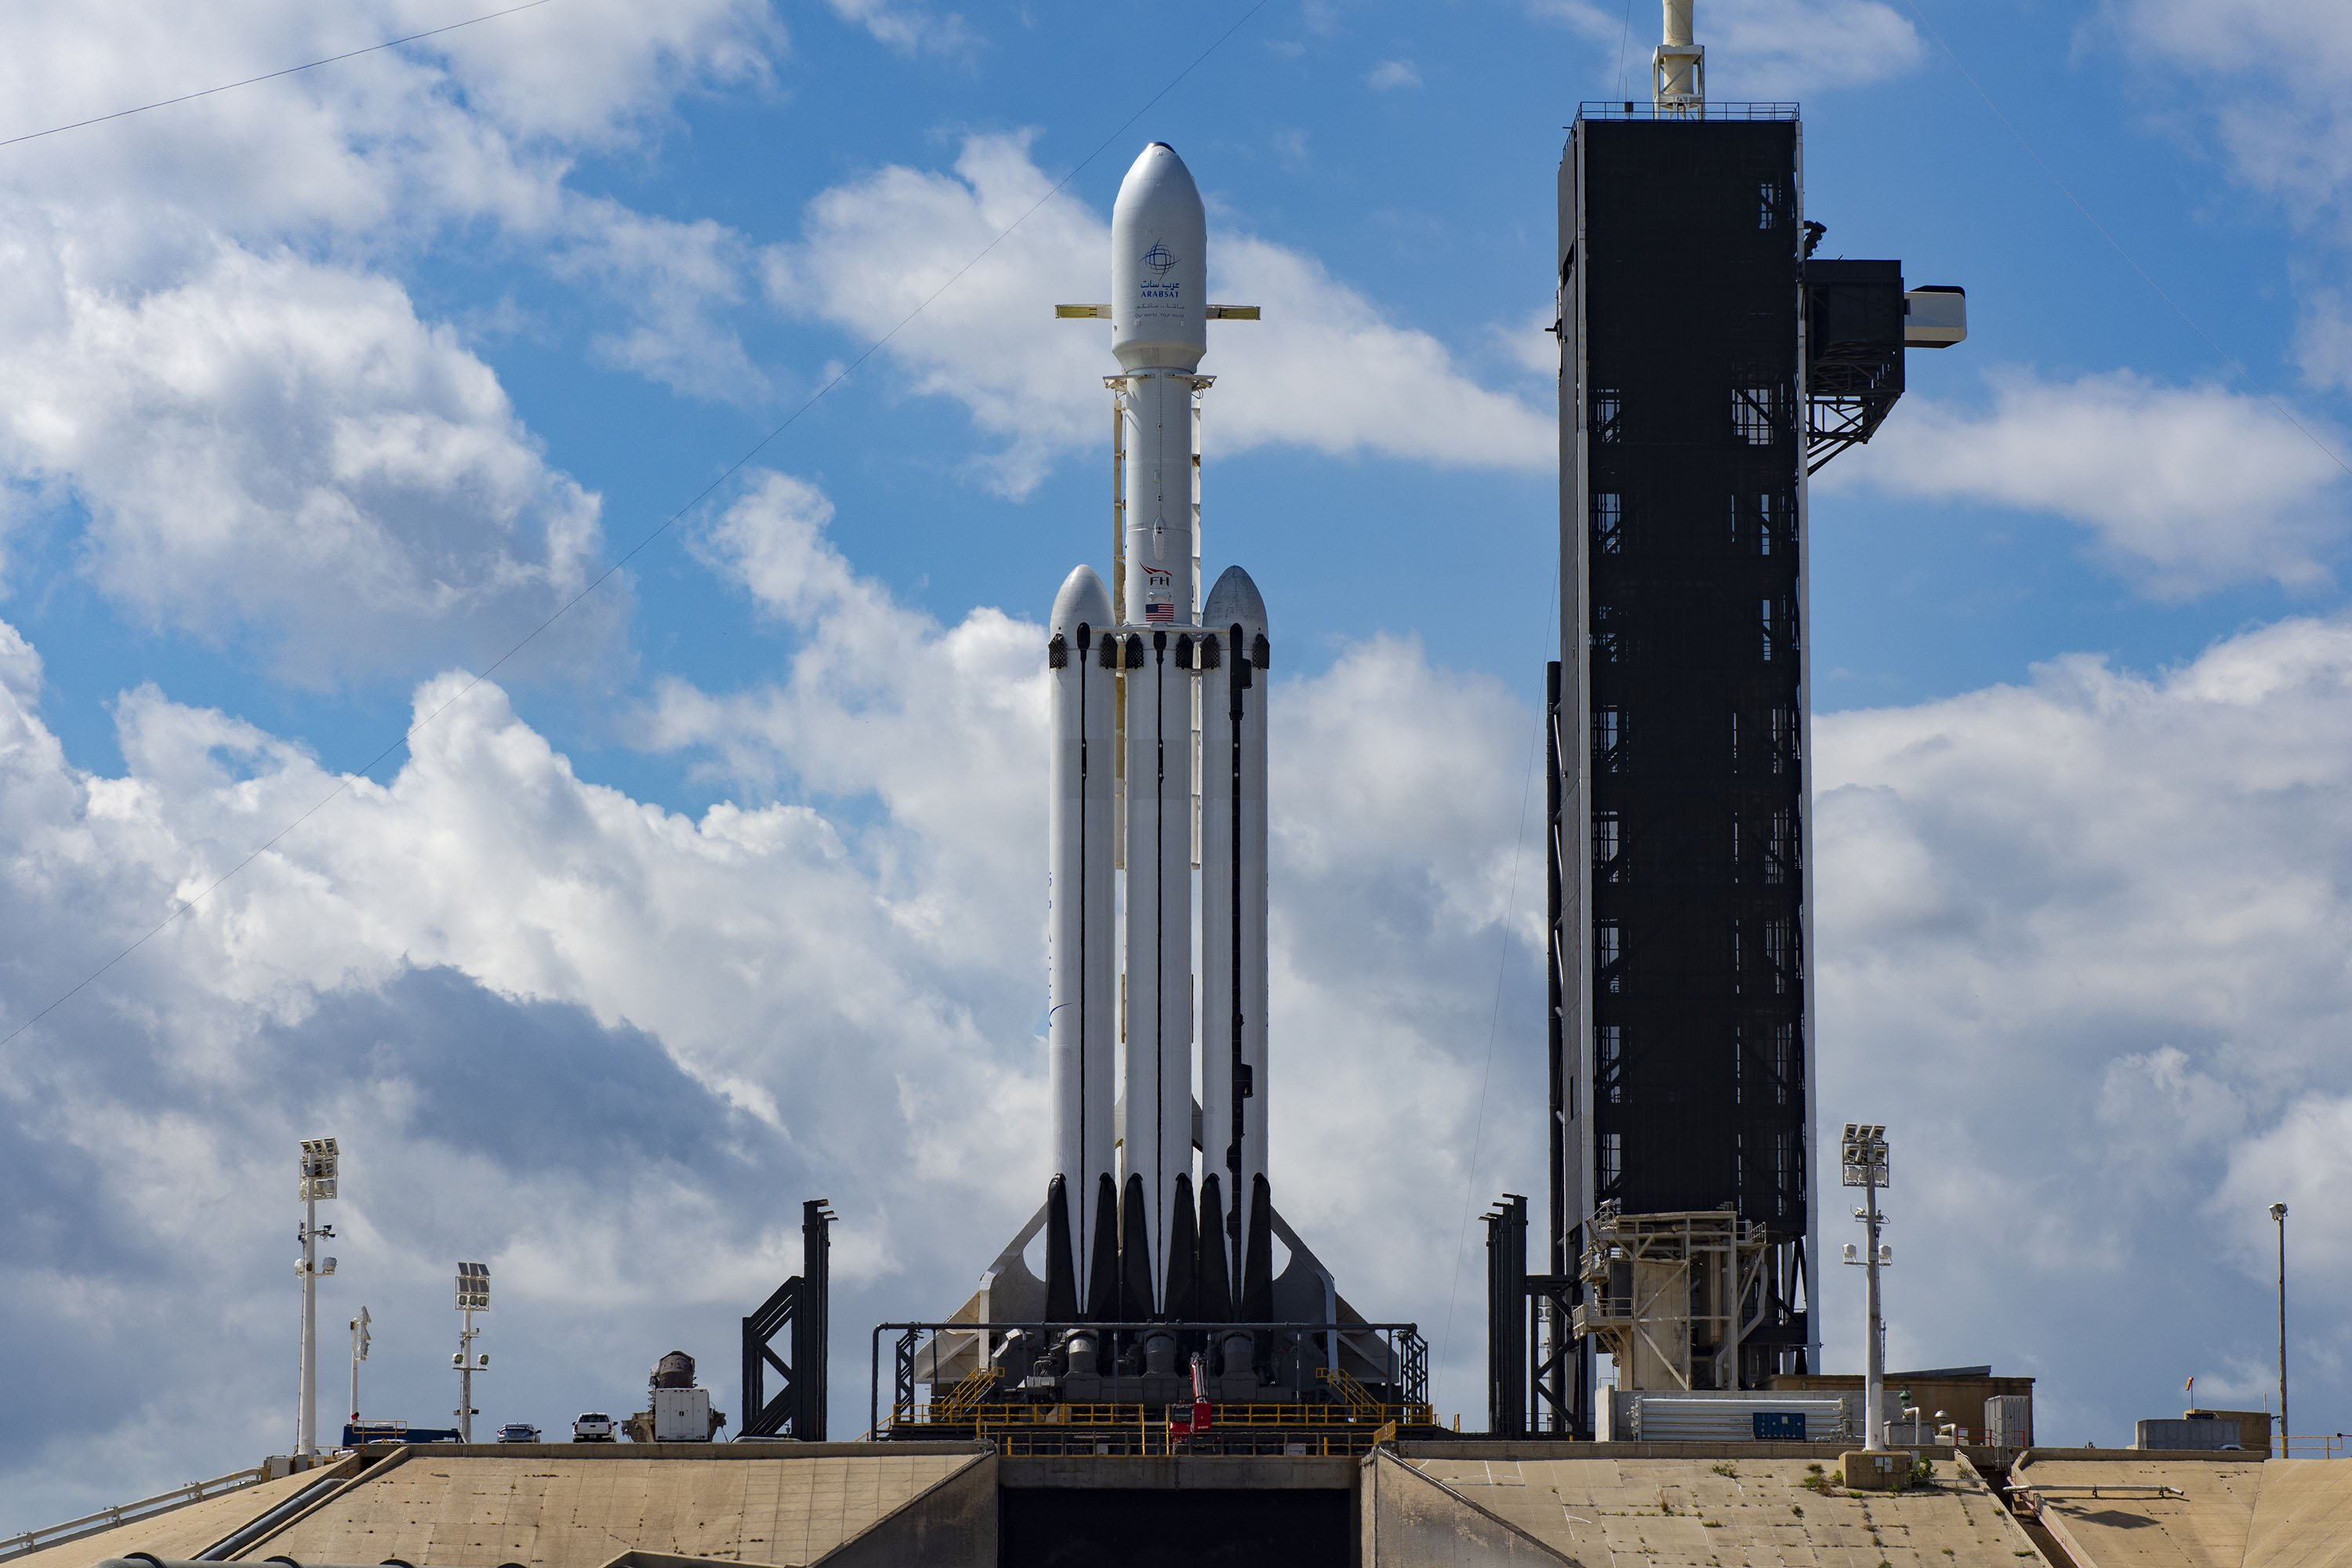 spacex falcon heavy launch today - HD3000×2000